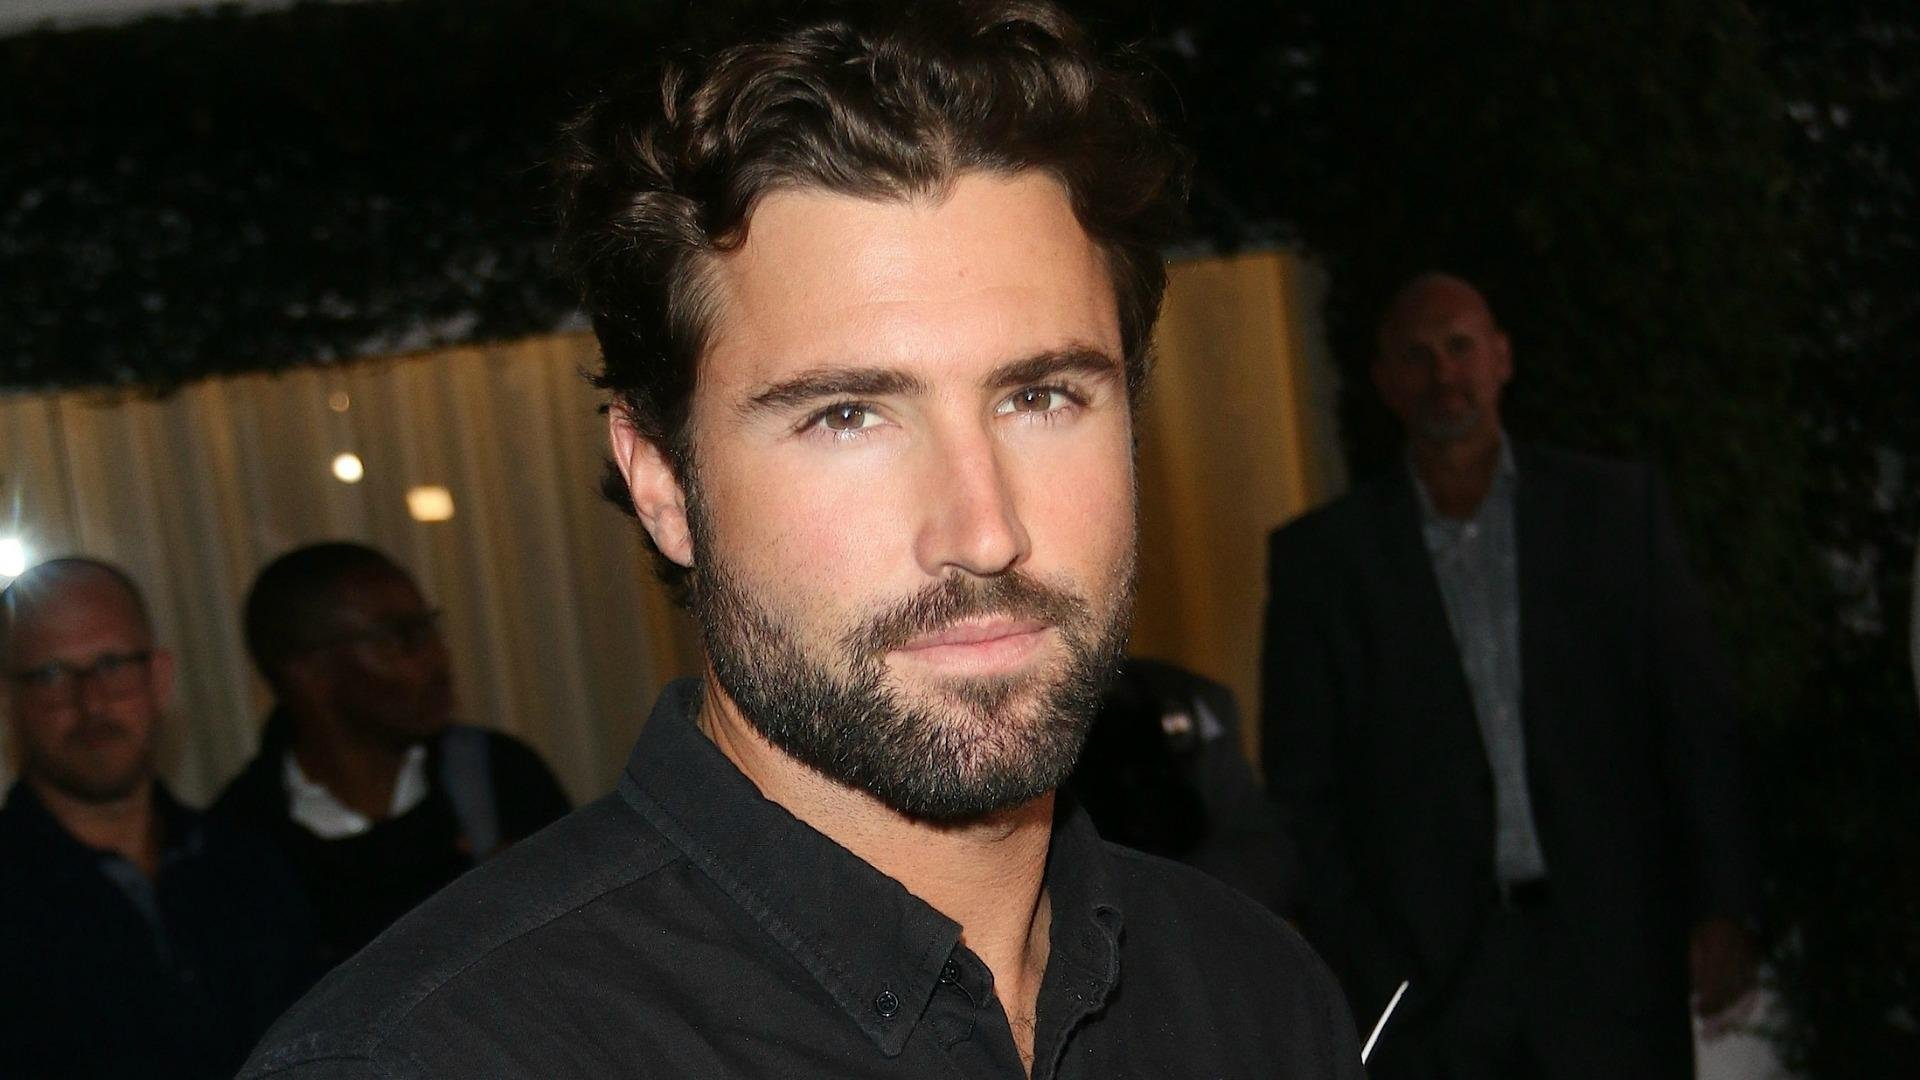 Brody Jenner says he did not dis Kim Kardashian by not attending her wedding